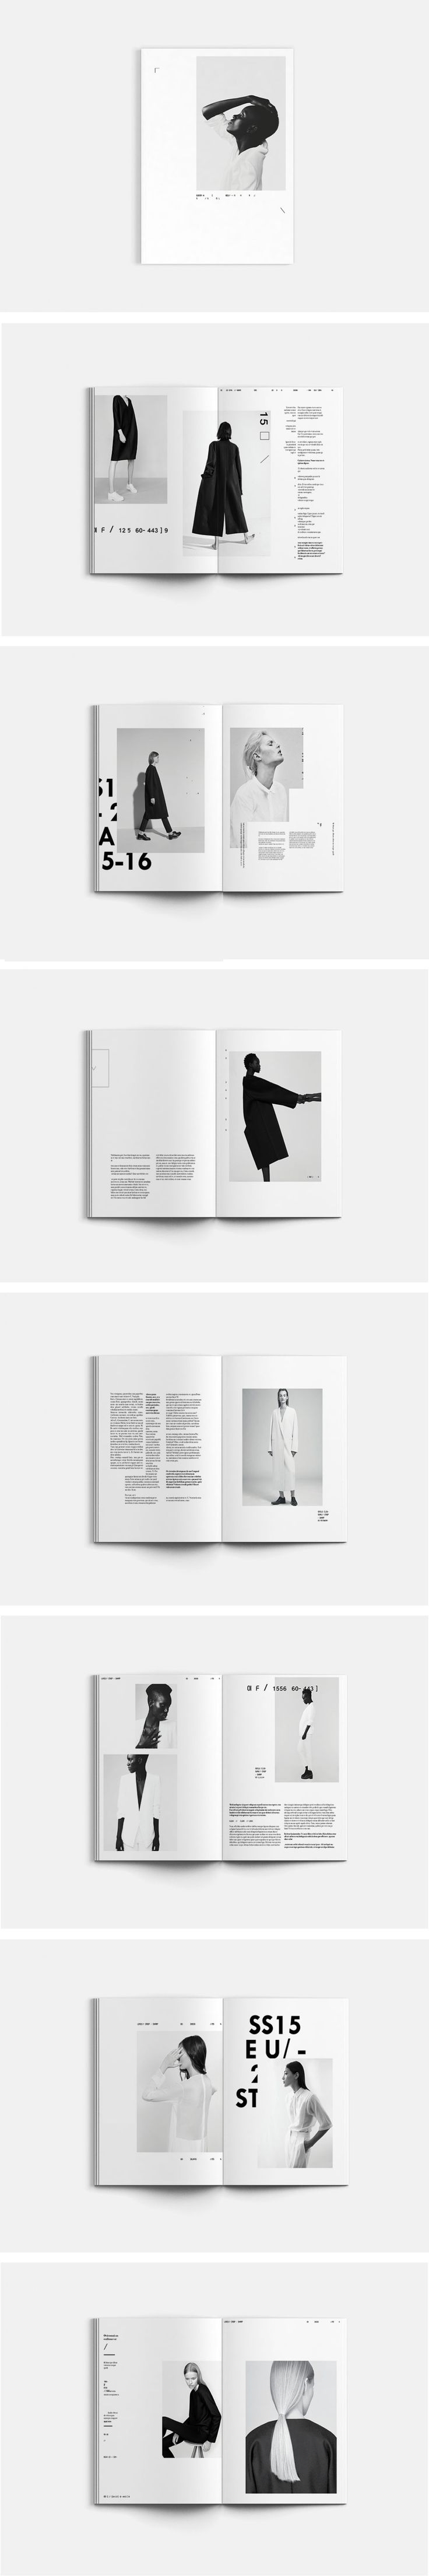 A lookbook for fictional brand QUOOR